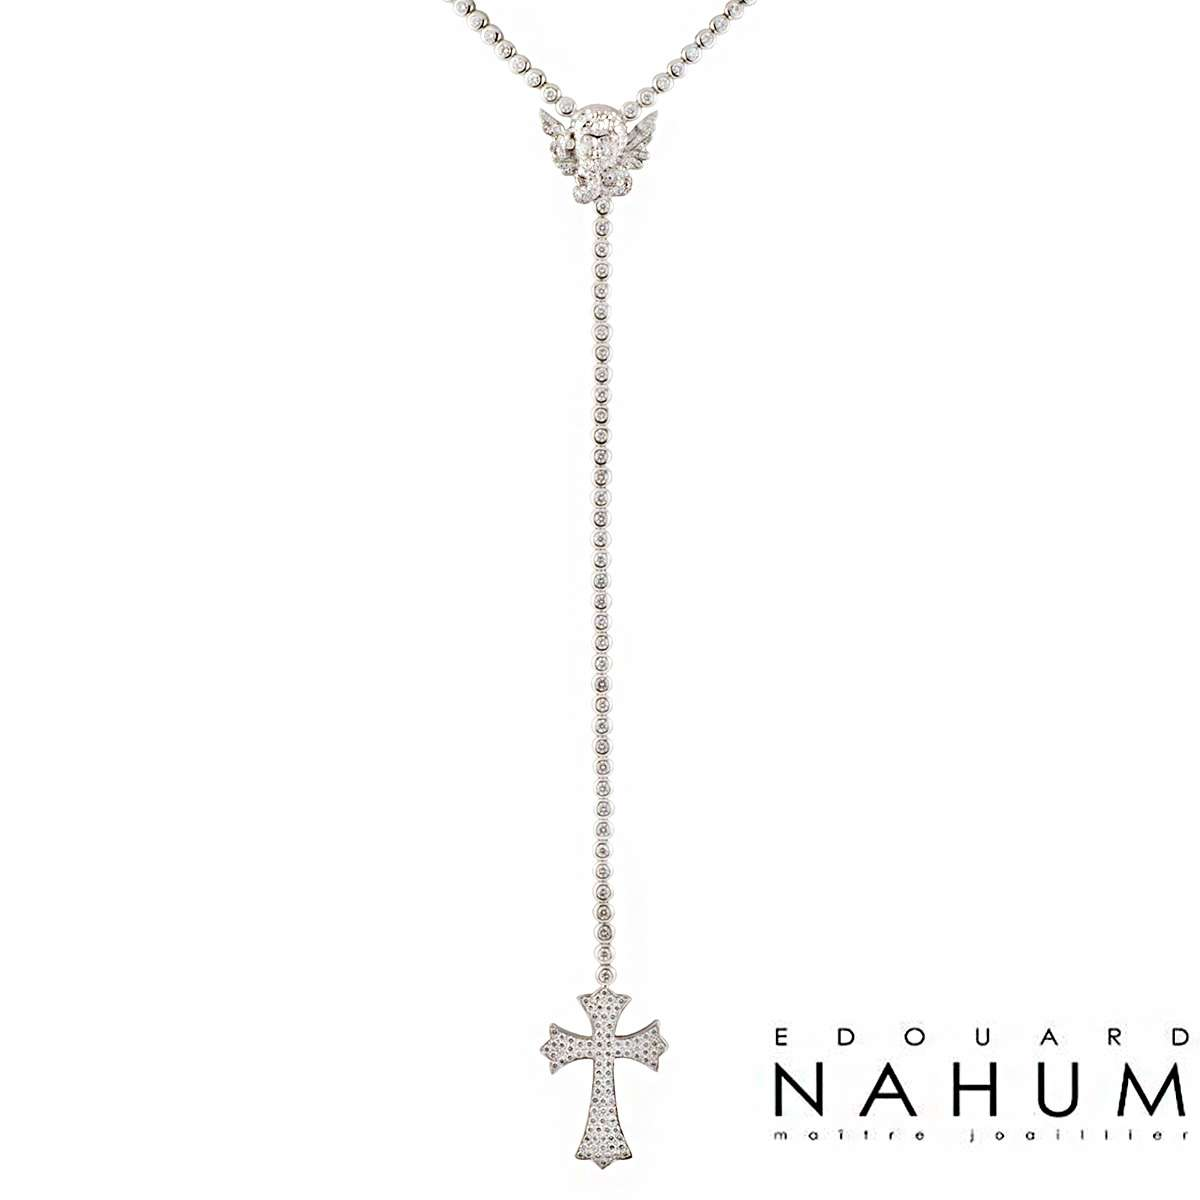 Edouard Nahum 18k White Gold Diamond Angel and Cross Necklace 14.66ct